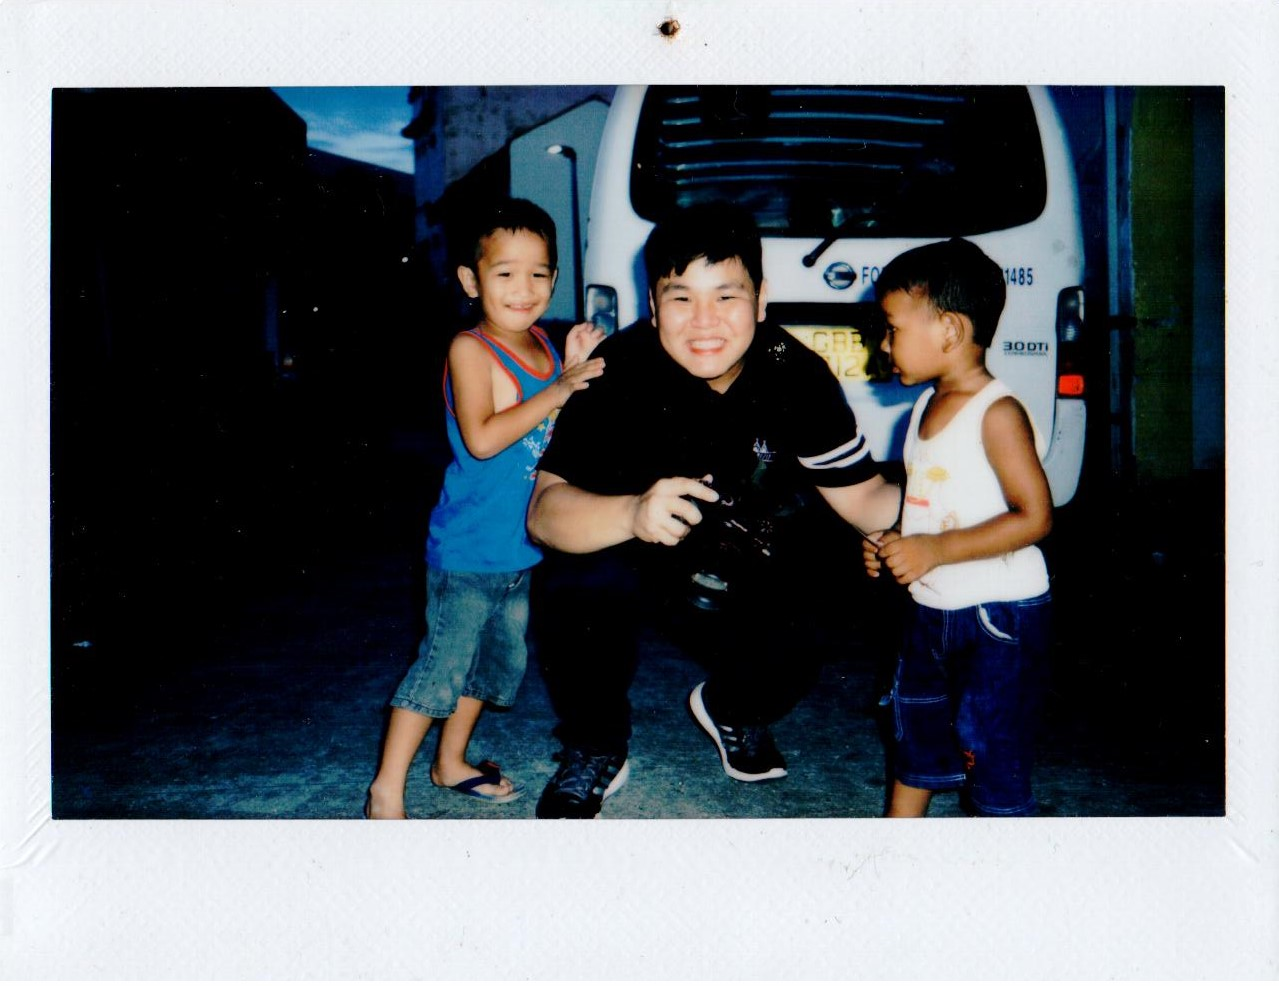 Having my picture taken with some children